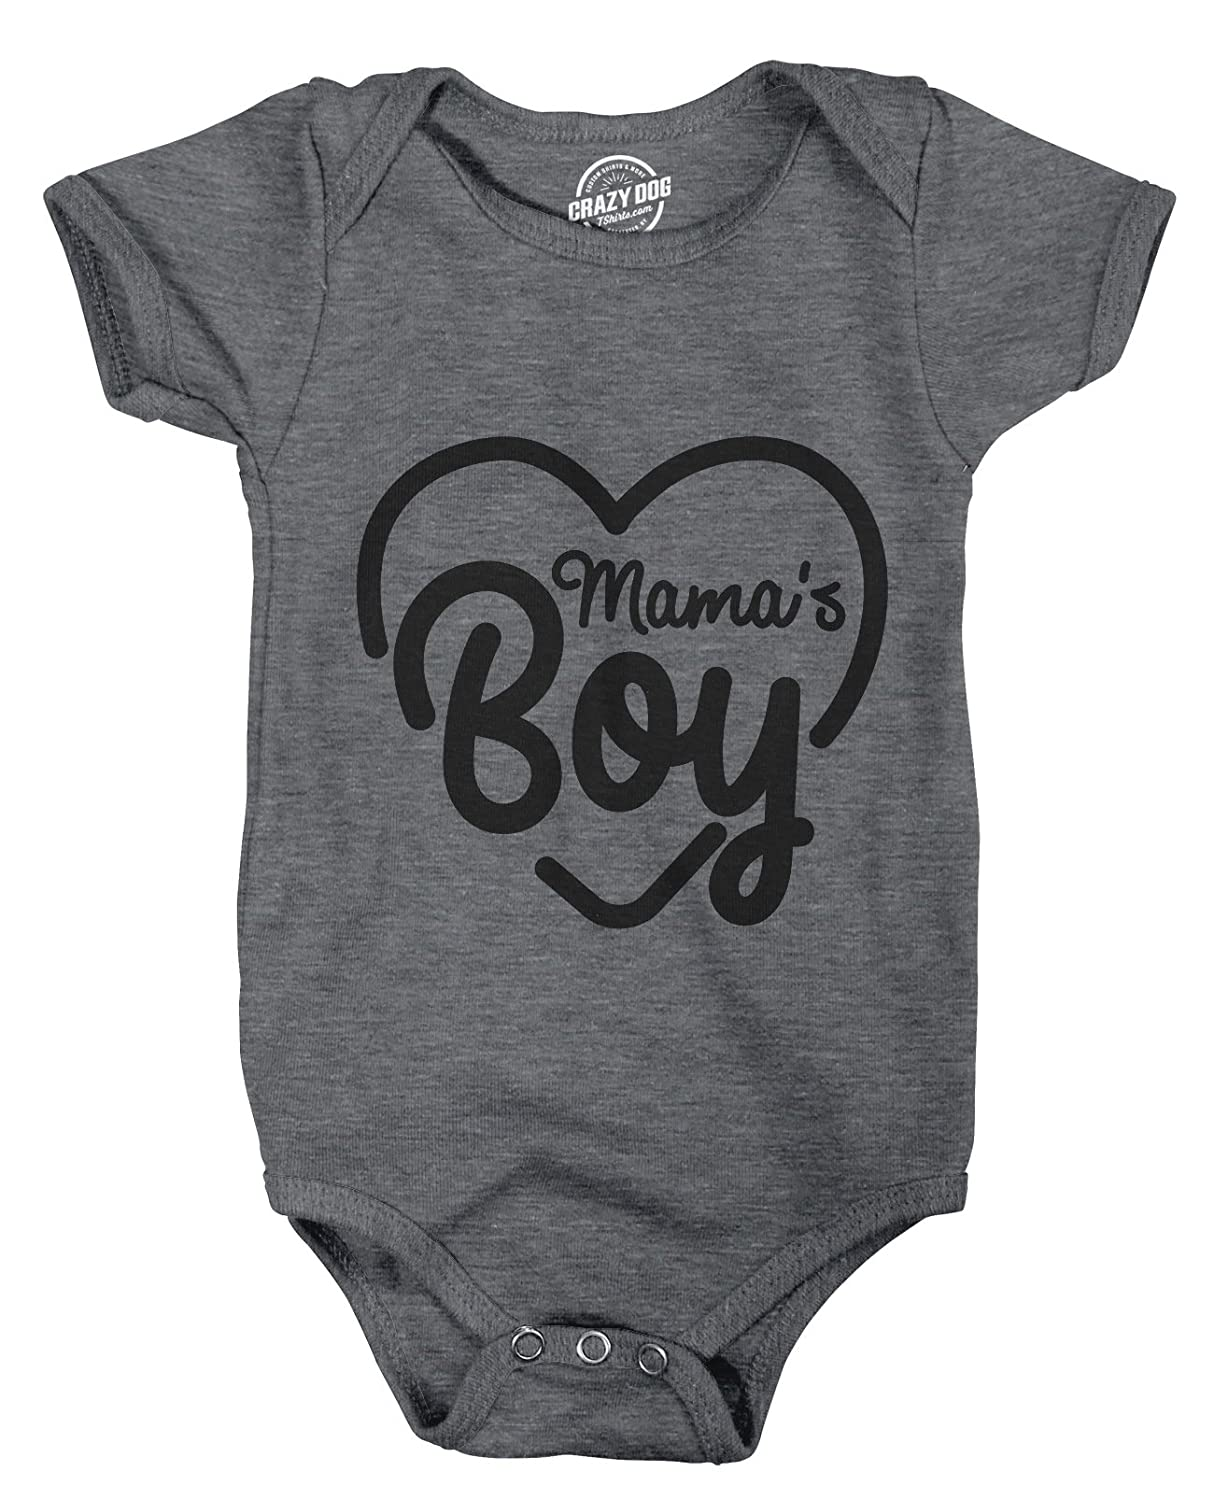 Crazy Dog T-Shirts Creeper Mamas Boy Cute Funny Baby Bodysuit for Newborn Son Crazy Dog Tshirts